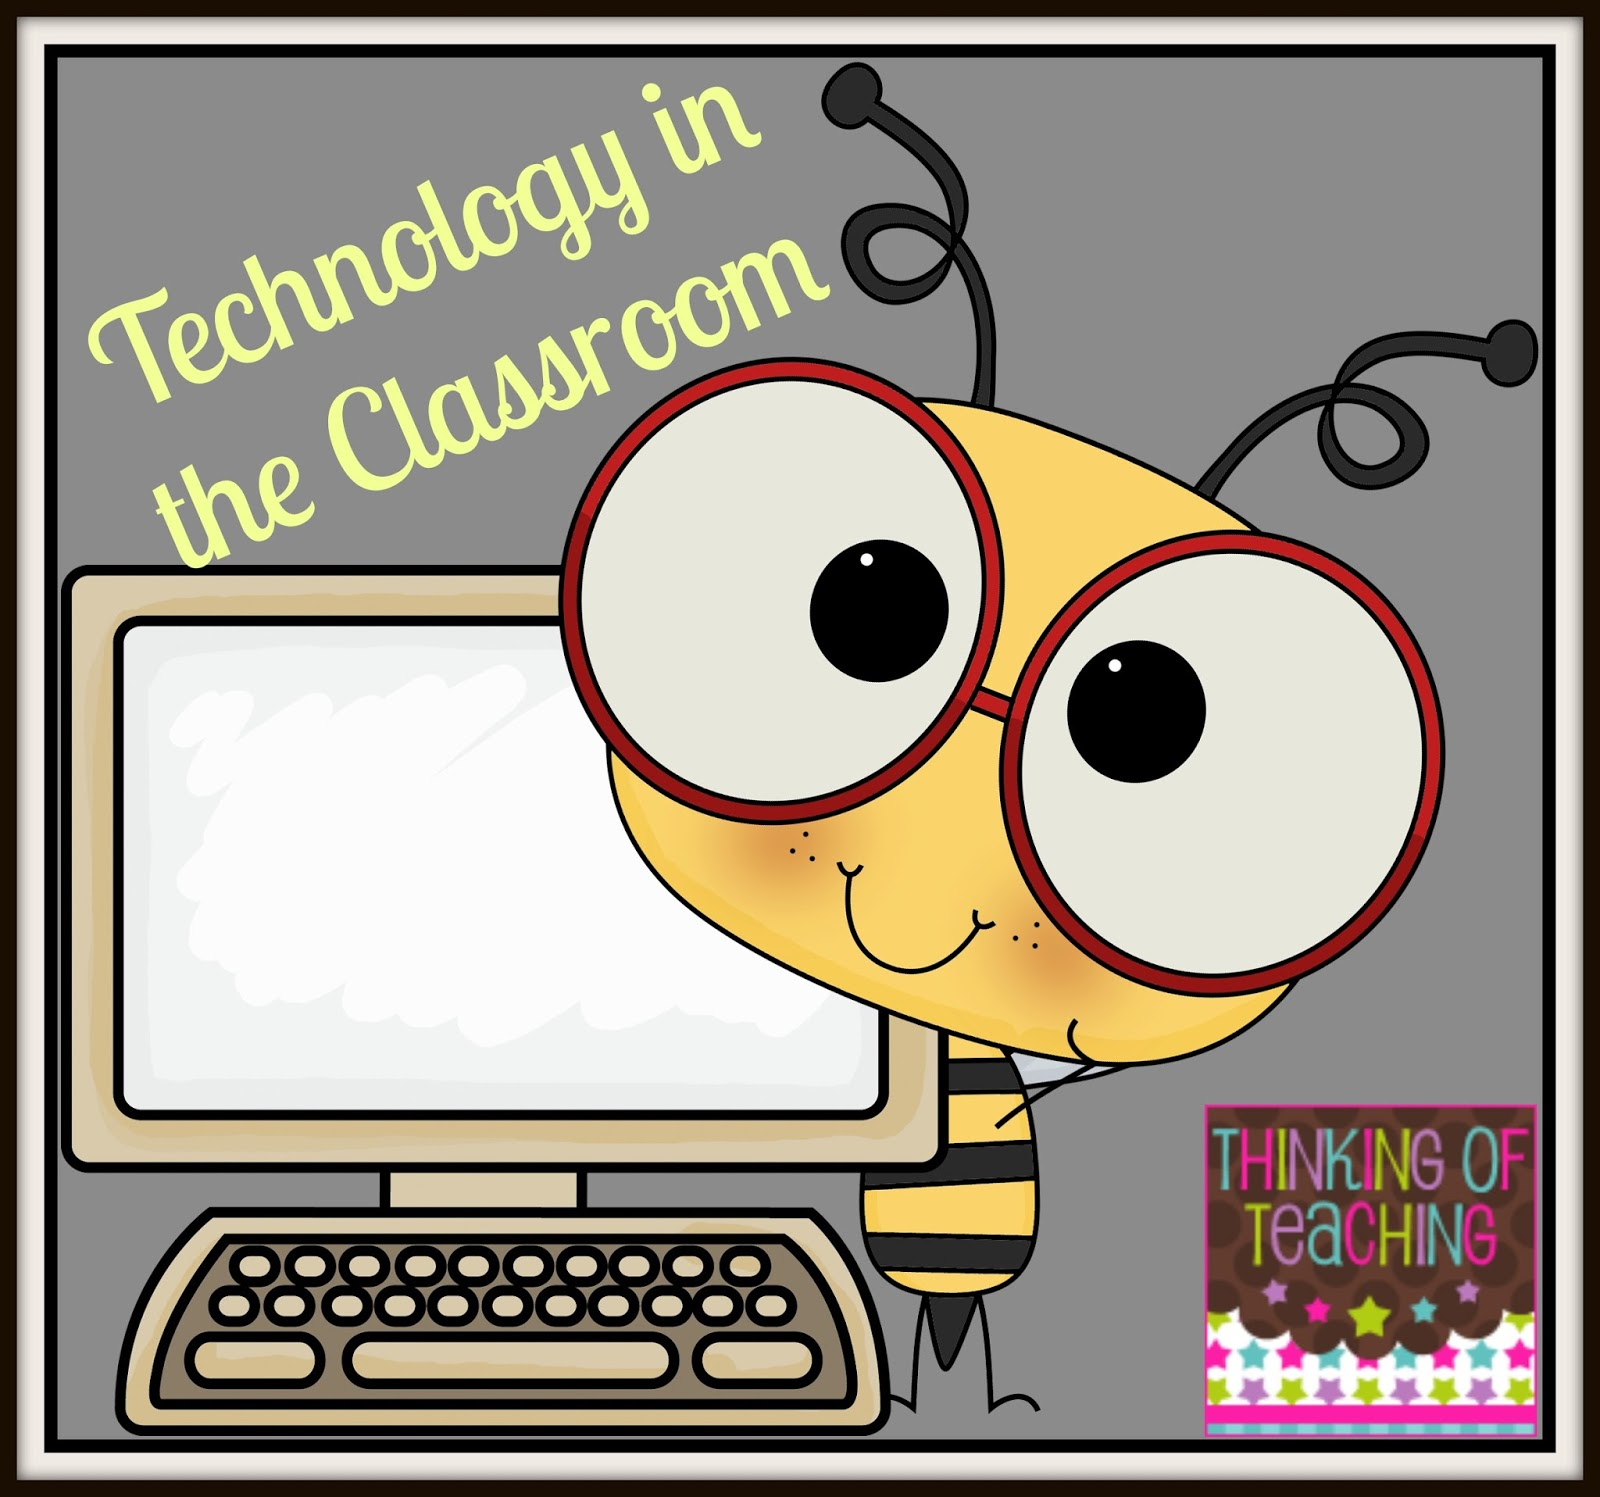 Classroom messenger clipart banner black and white Parent in classroom clipart - ClipartFest banner black and white